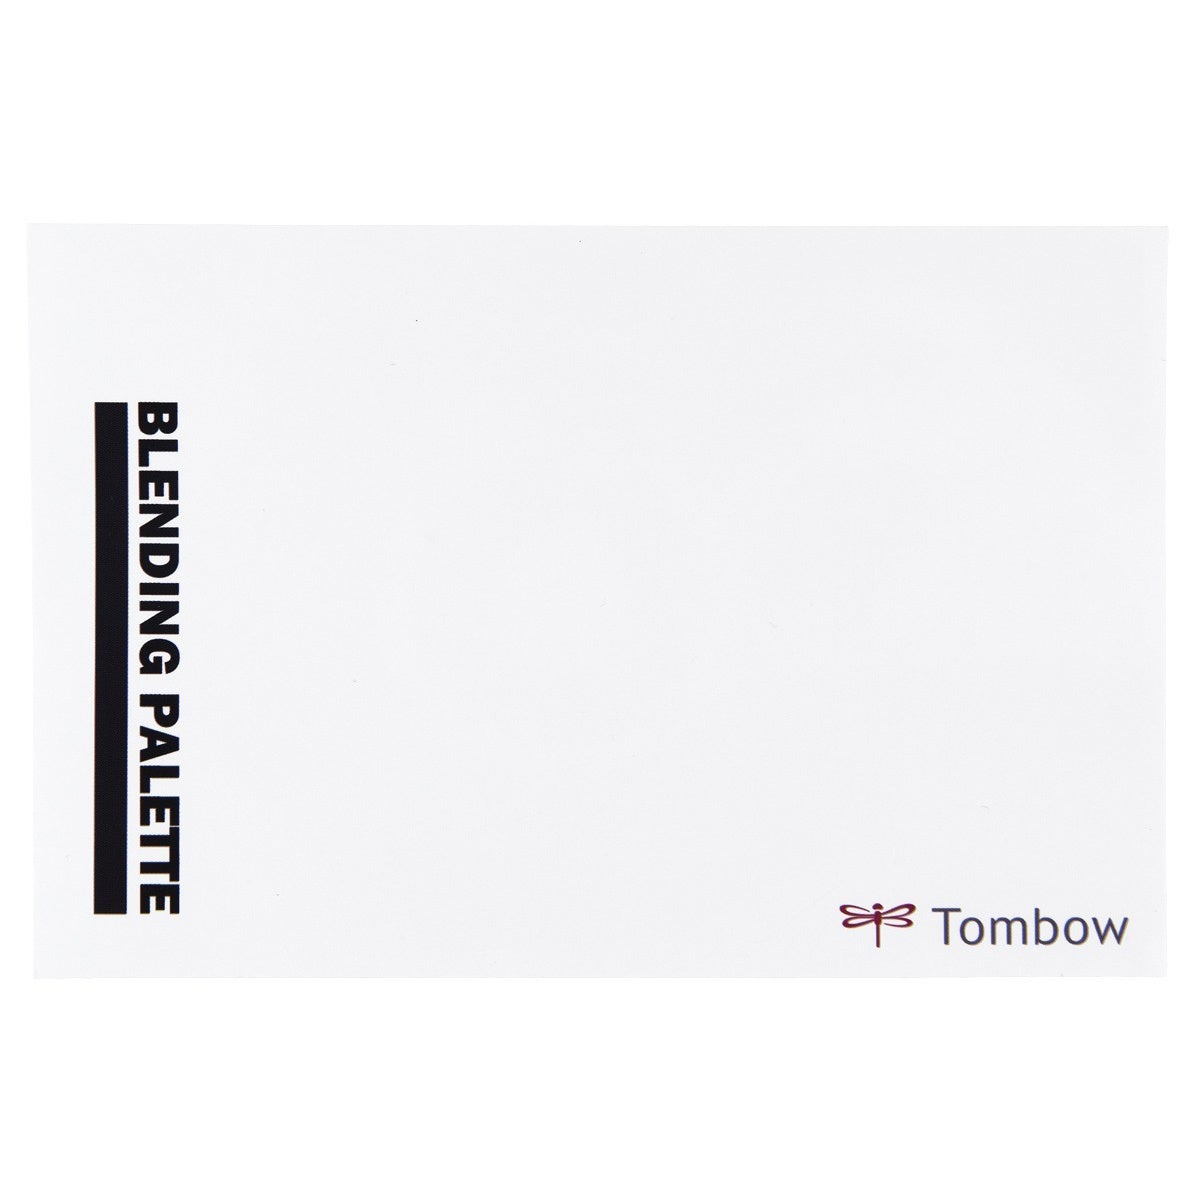 Tombow blending palette with white color chart free shipping on tombow blending palette with white color chart free shipping on orders over 45 overstock 18572246 nvjuhfo Gallery